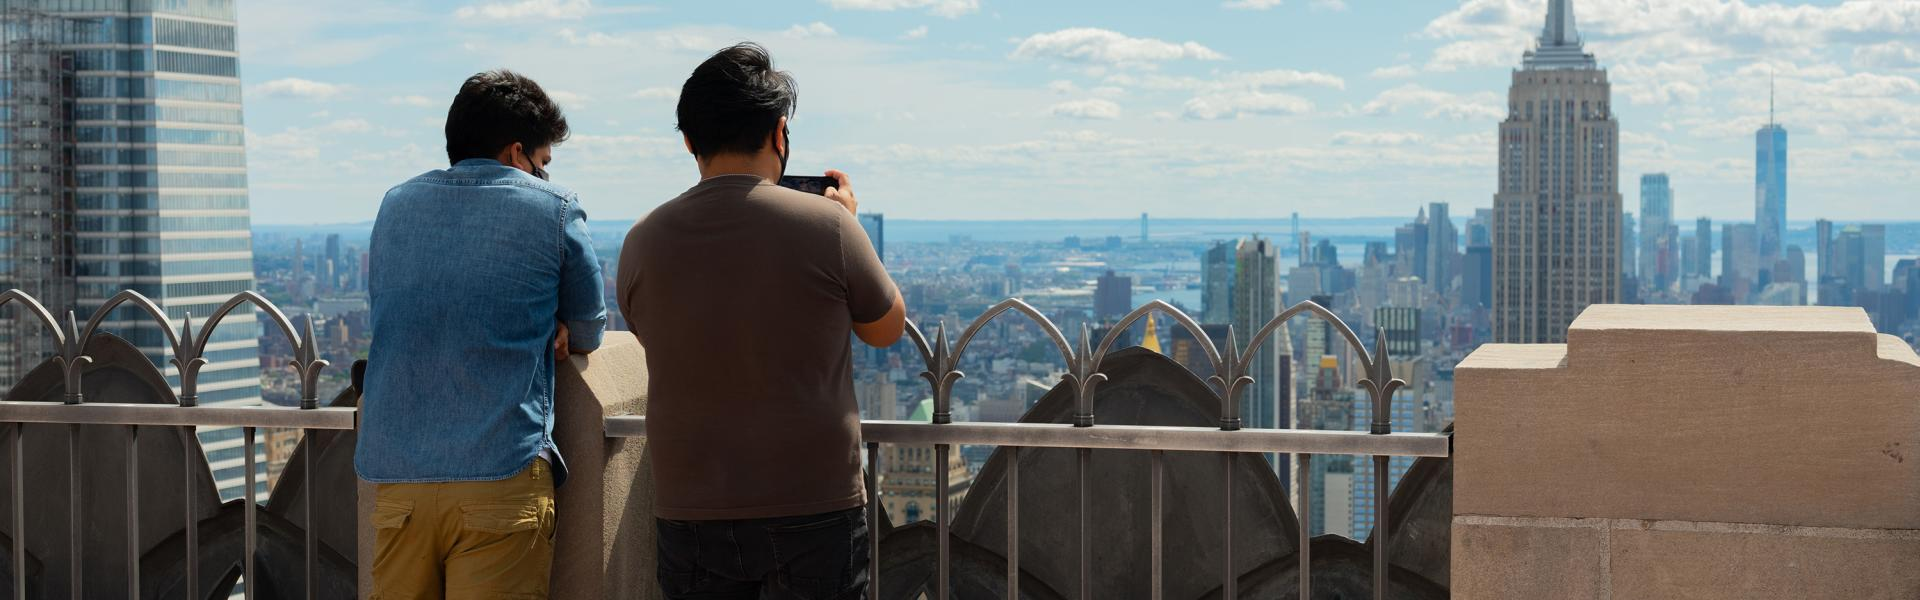 Top of the Rock, Manhattan, NYC